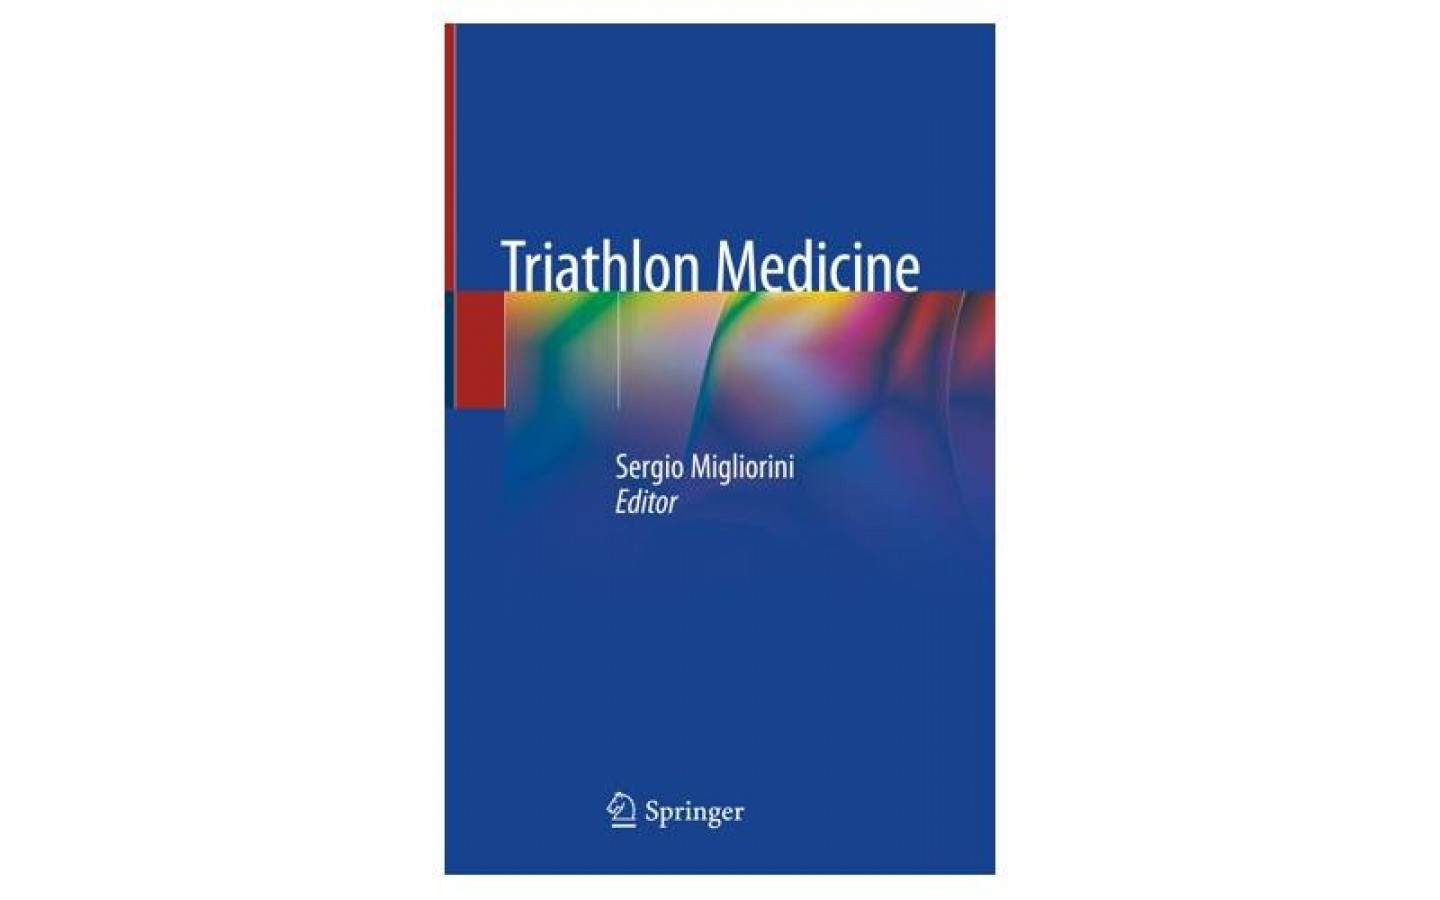 book_triathlon_135-143_k